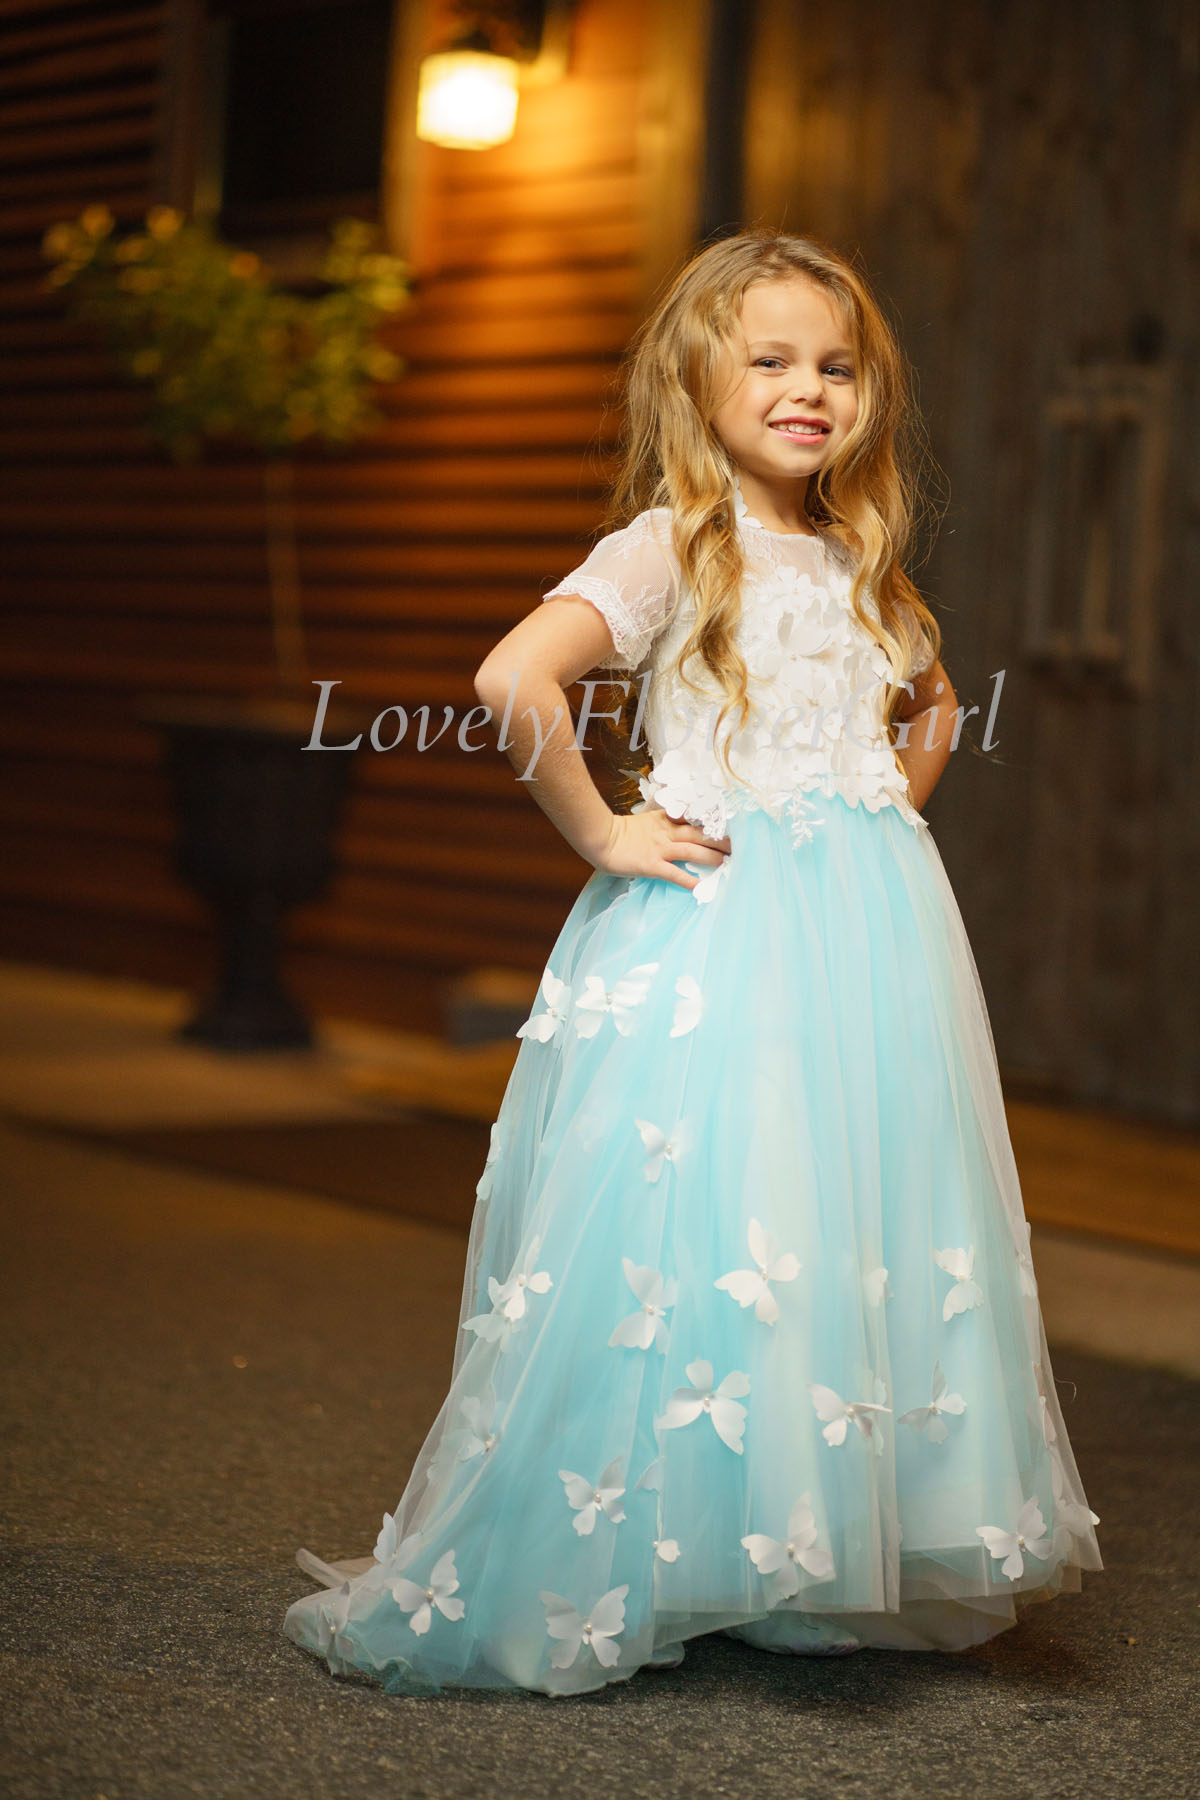 Short Sleeve Floor-length Flower Girl Dress Blue-Butterfly